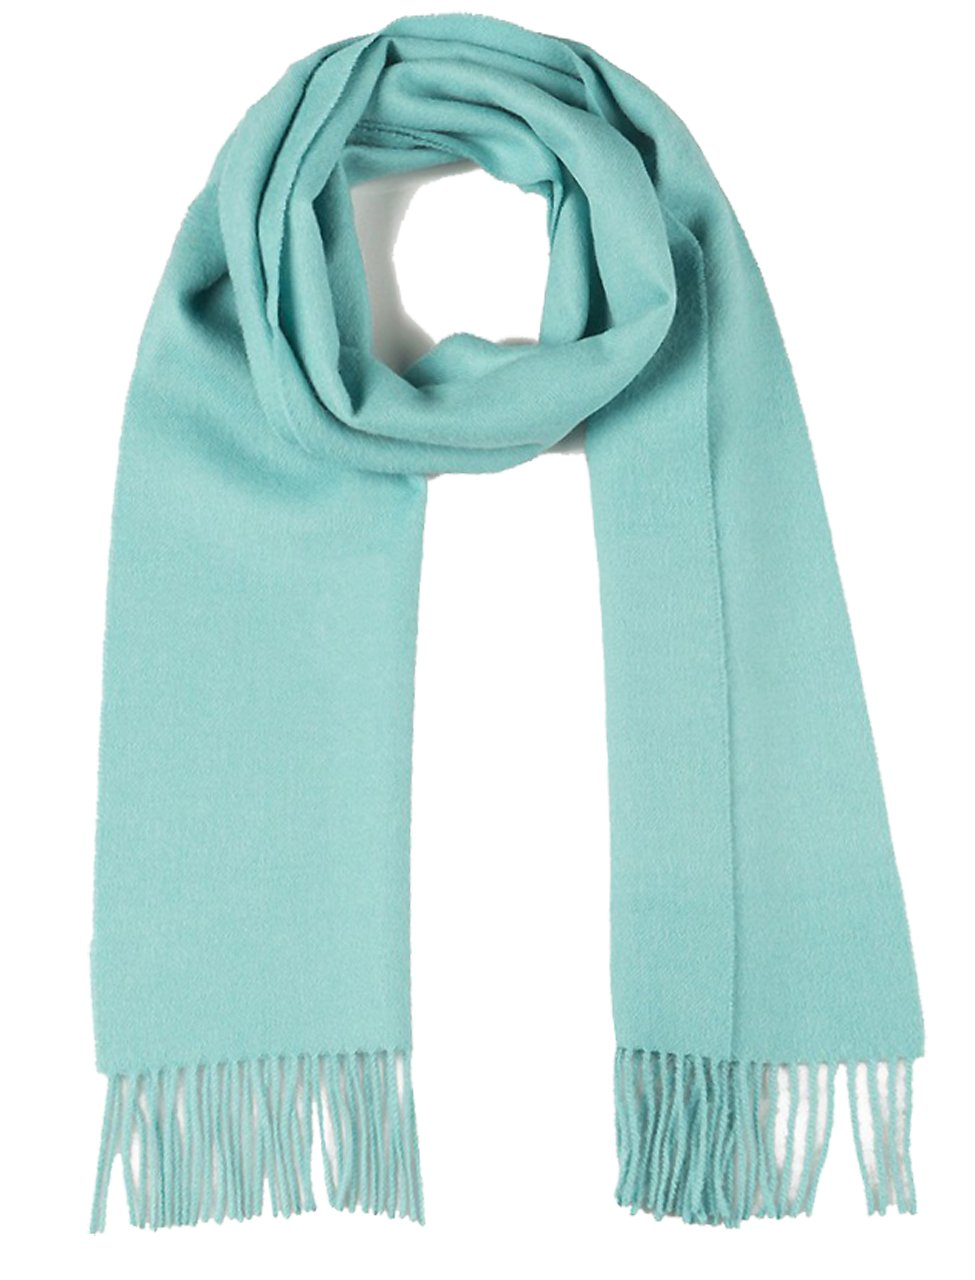 100% Pure Baby Alpaca Scarf - Bright Happy Solid Colors (Clearwater Blue)